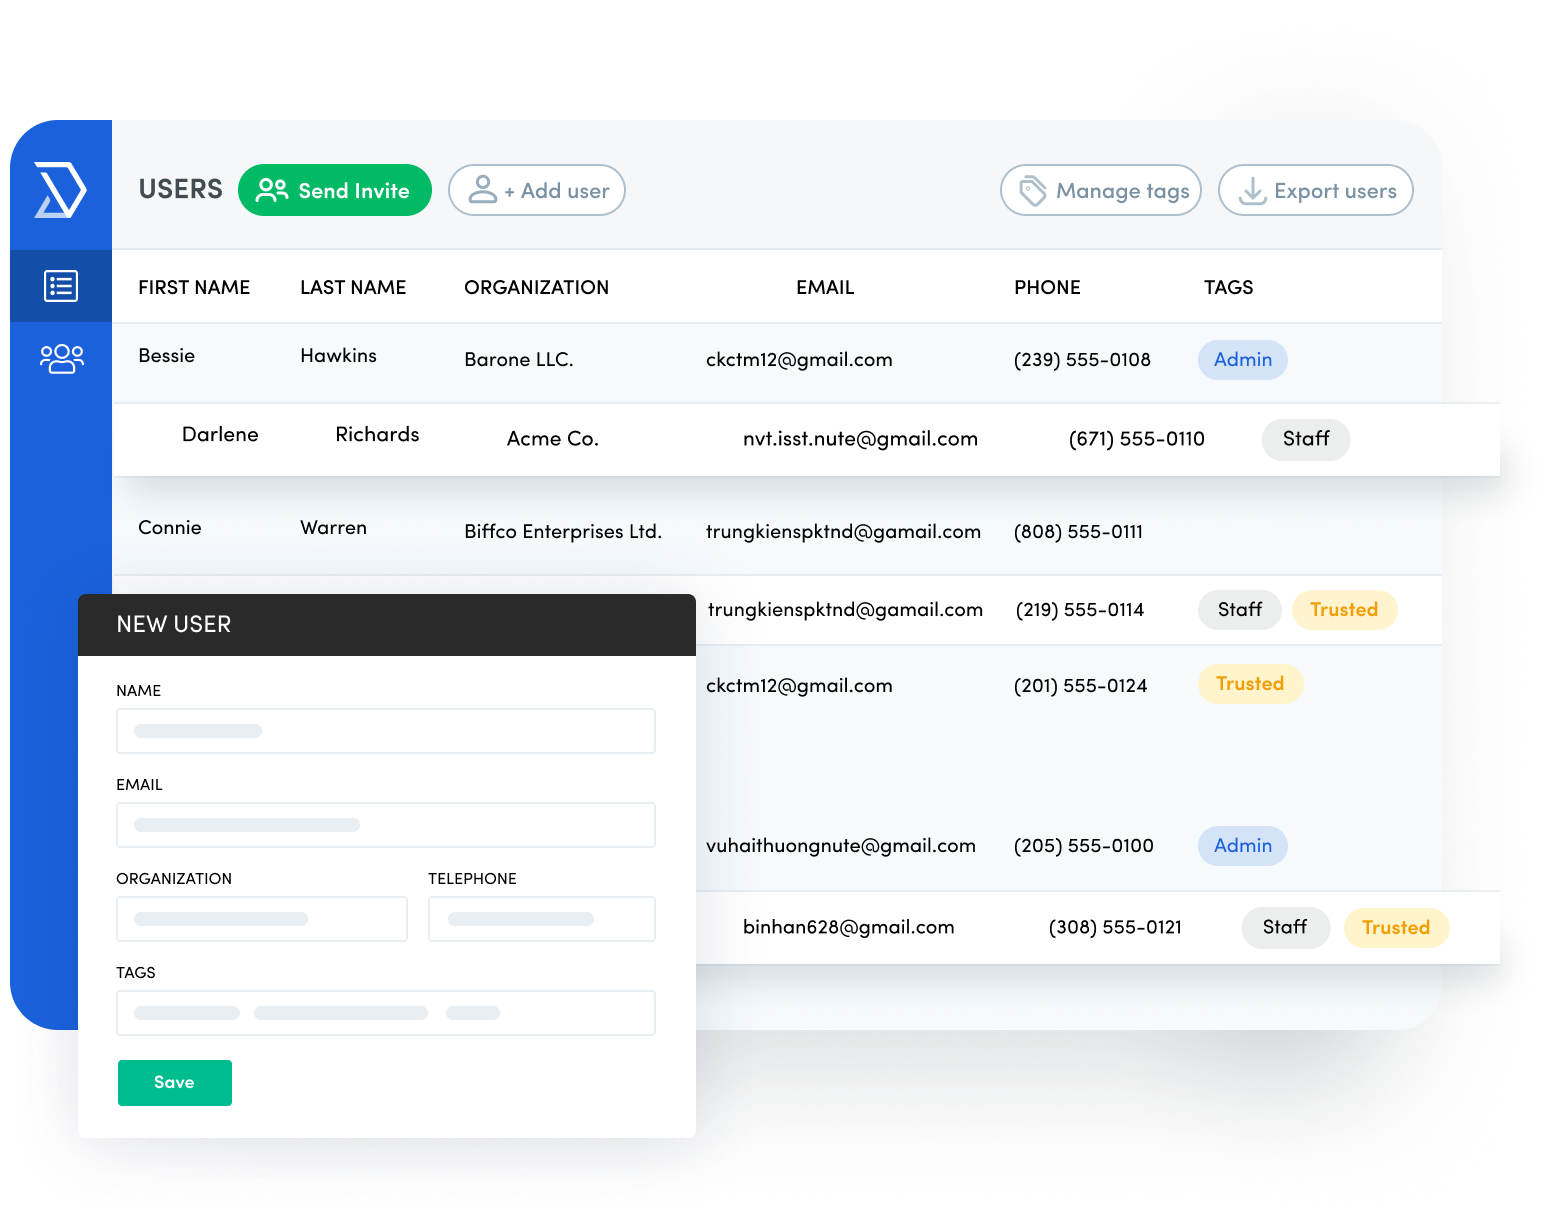 Easily make decisions regarding how users can book space at your organization with Skedda's user management capabilities.